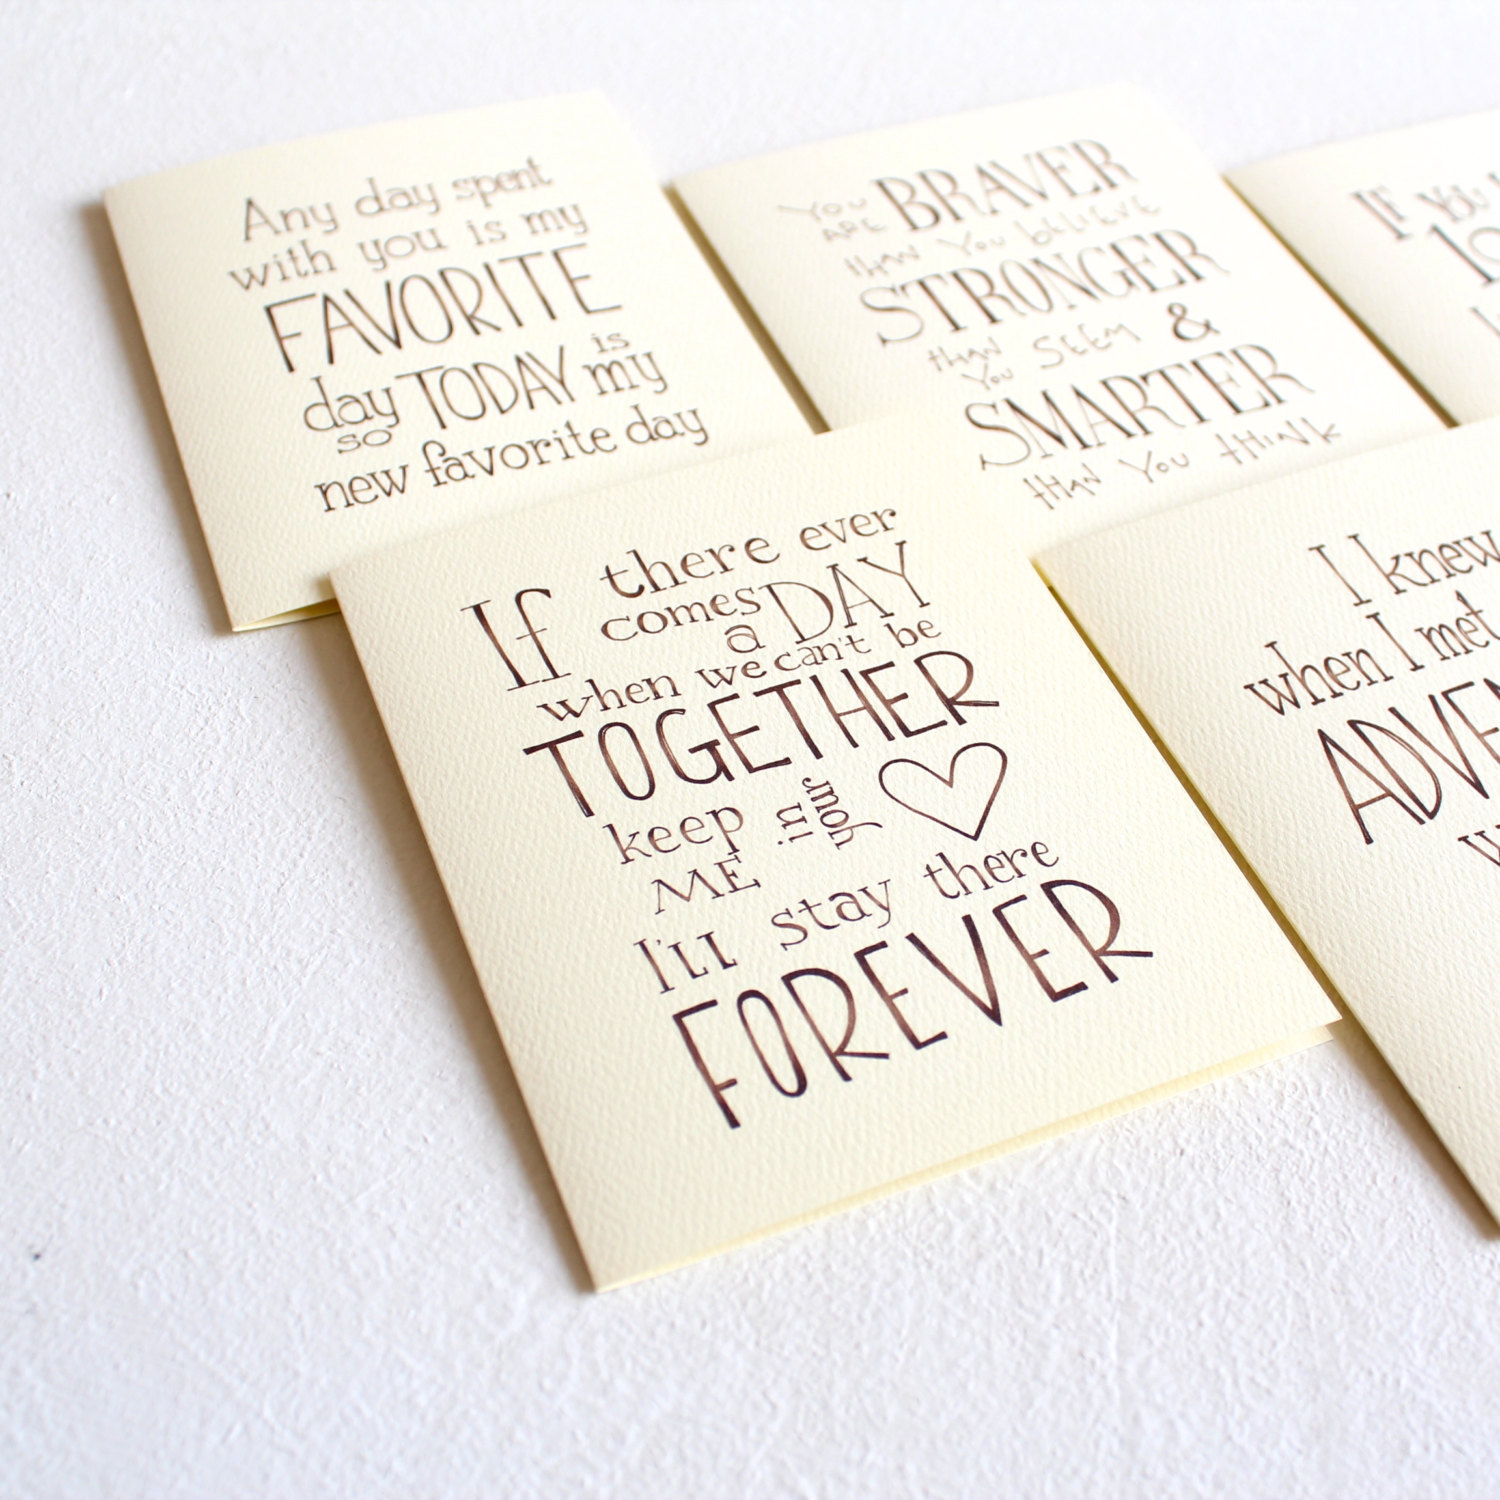 quotes for girlfriend birthday card ; Birthday-Card-Quotes-For-Girlfriend-and-get-ideas-how-to-make-exquisite-birthday-Card-appearance-3